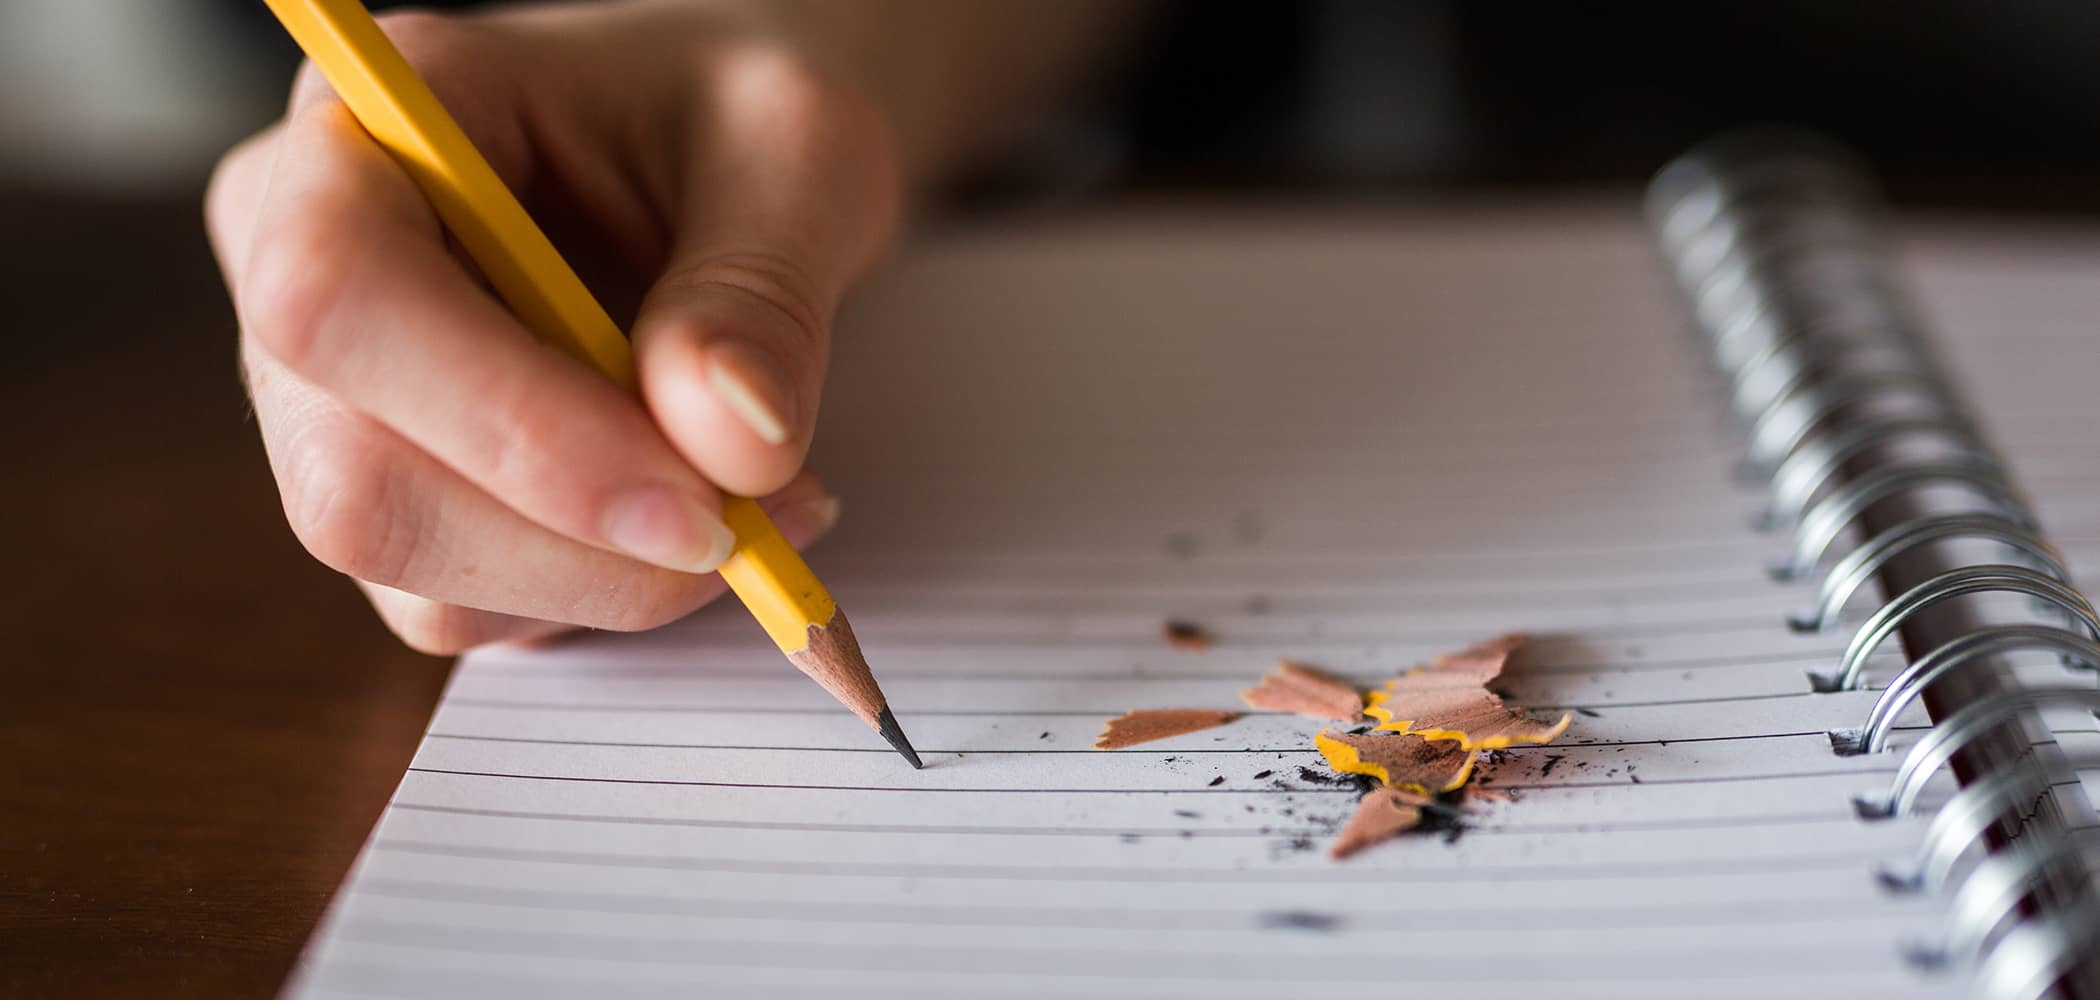 A person writing with a pencil on a notebook